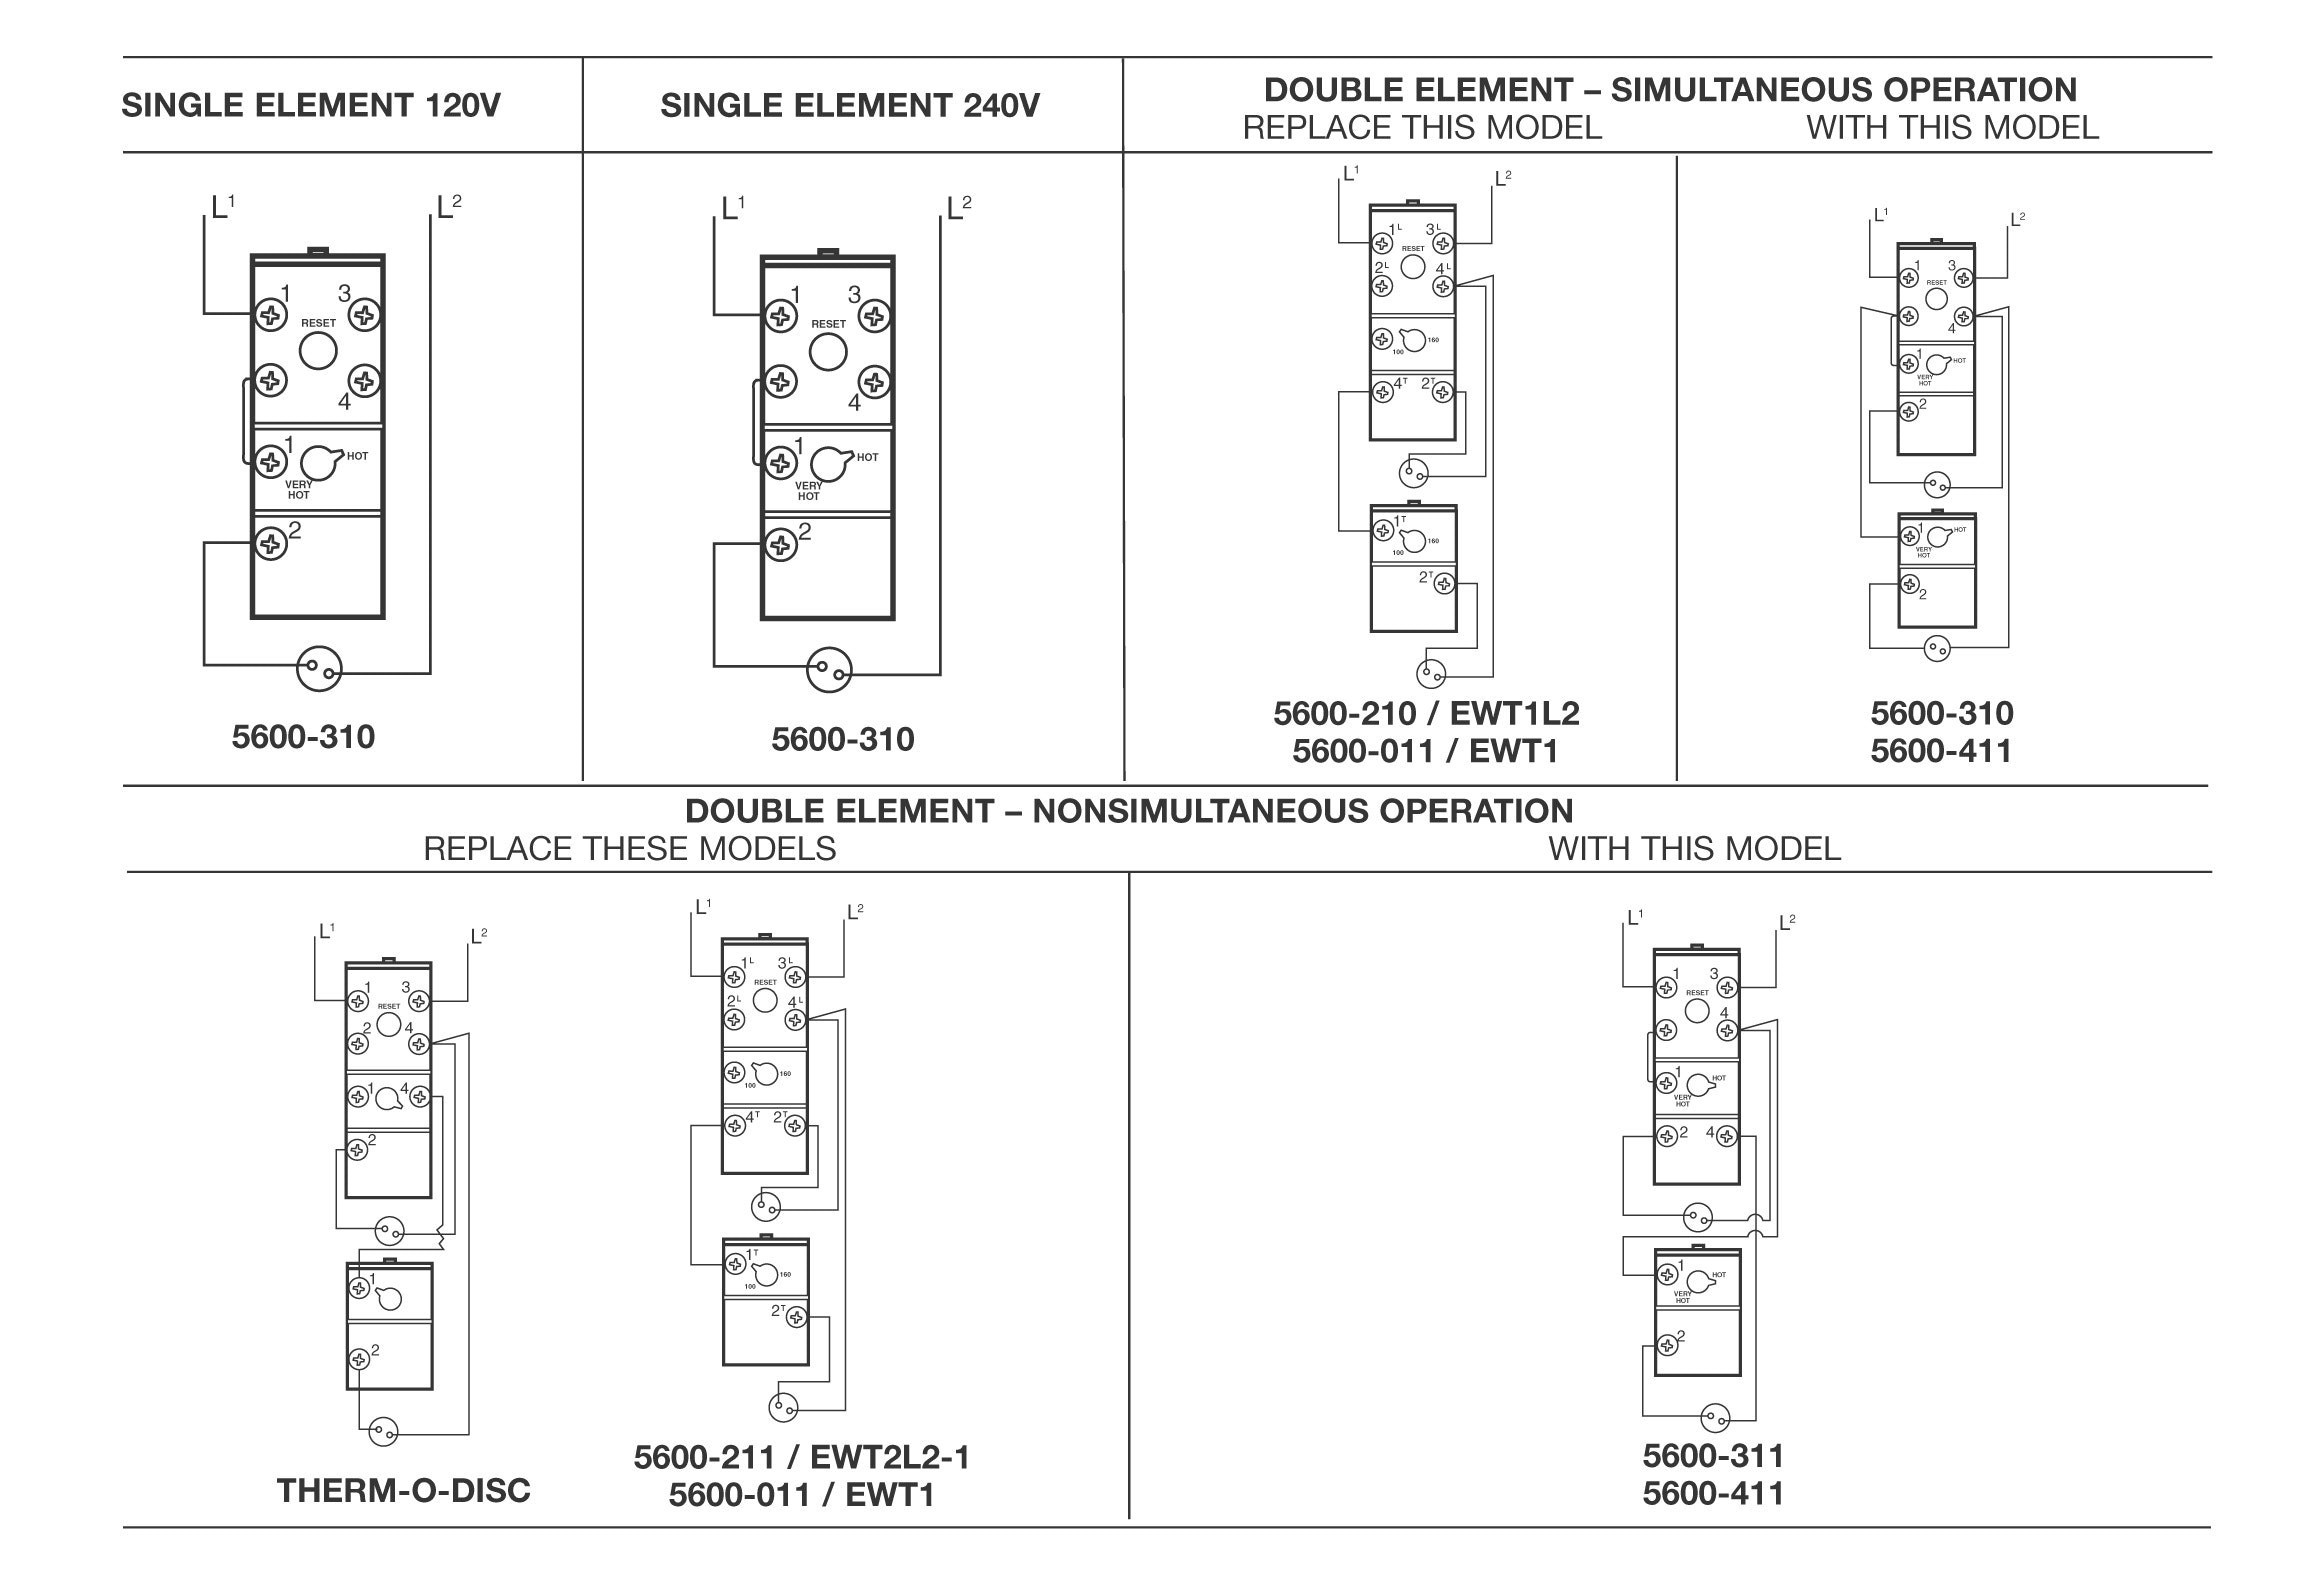 water heater wiring diagram dual element Download-Wiring Diagram for Water Heater New Water Heater Wiring Diagram Dual Element Awesome Robertshaw 10-i